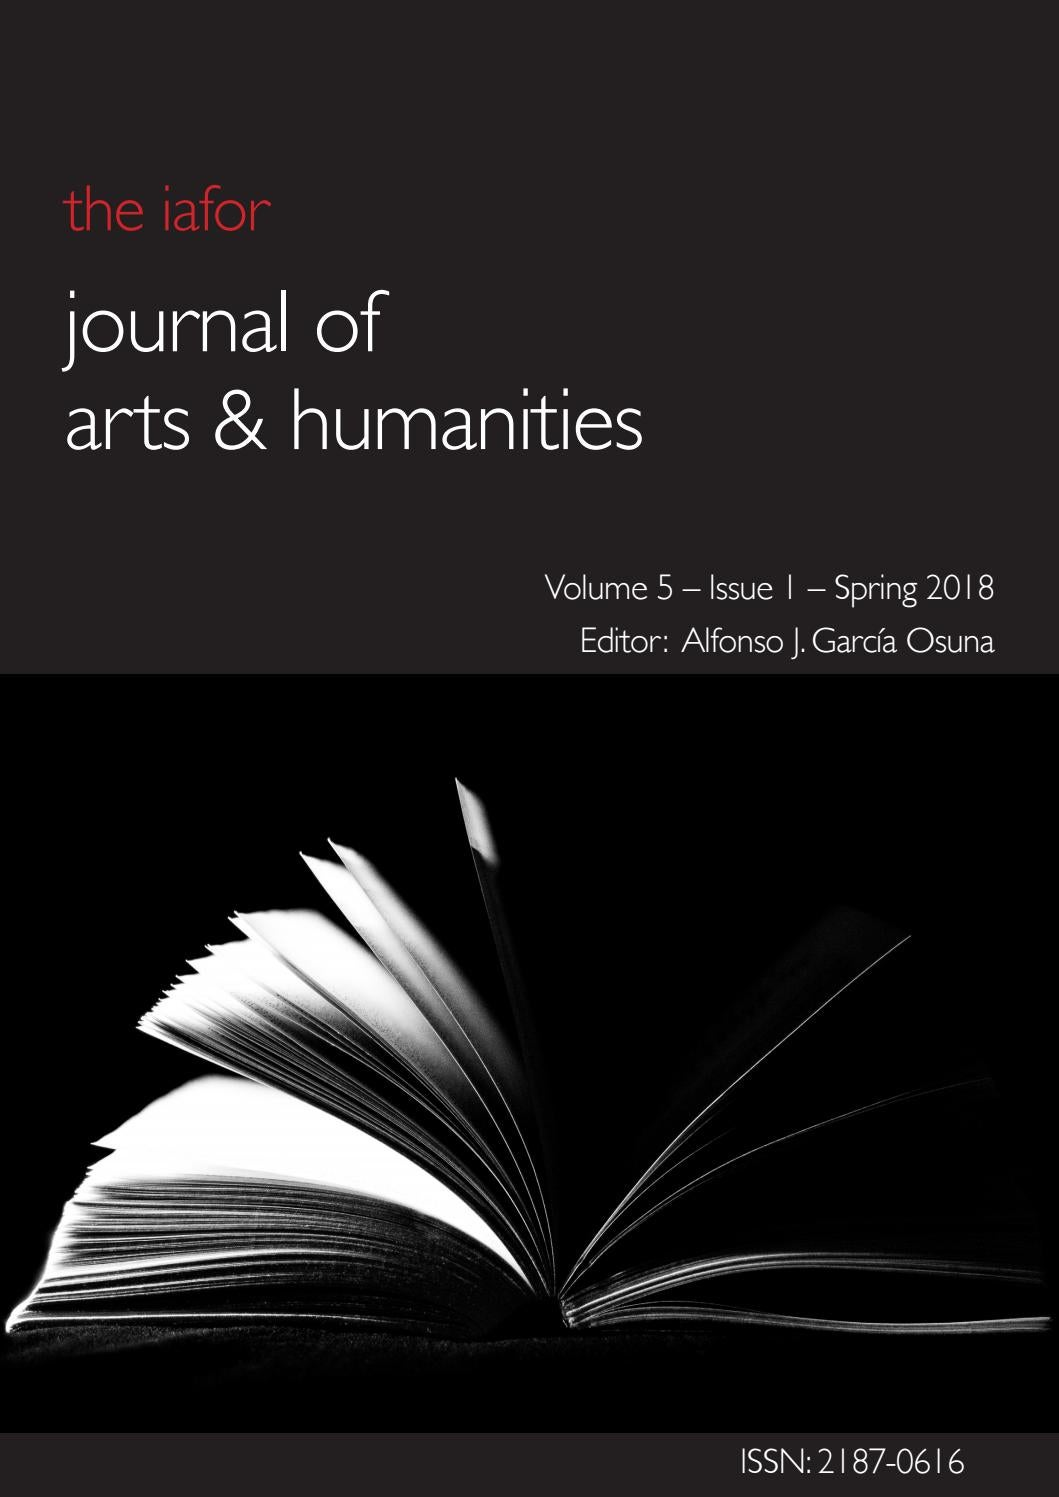 IAFOR Journal of Arts   Humanities Volume 5 – Issue 1 – Spring 2018 by  IAFOR - issuu 094a24af8